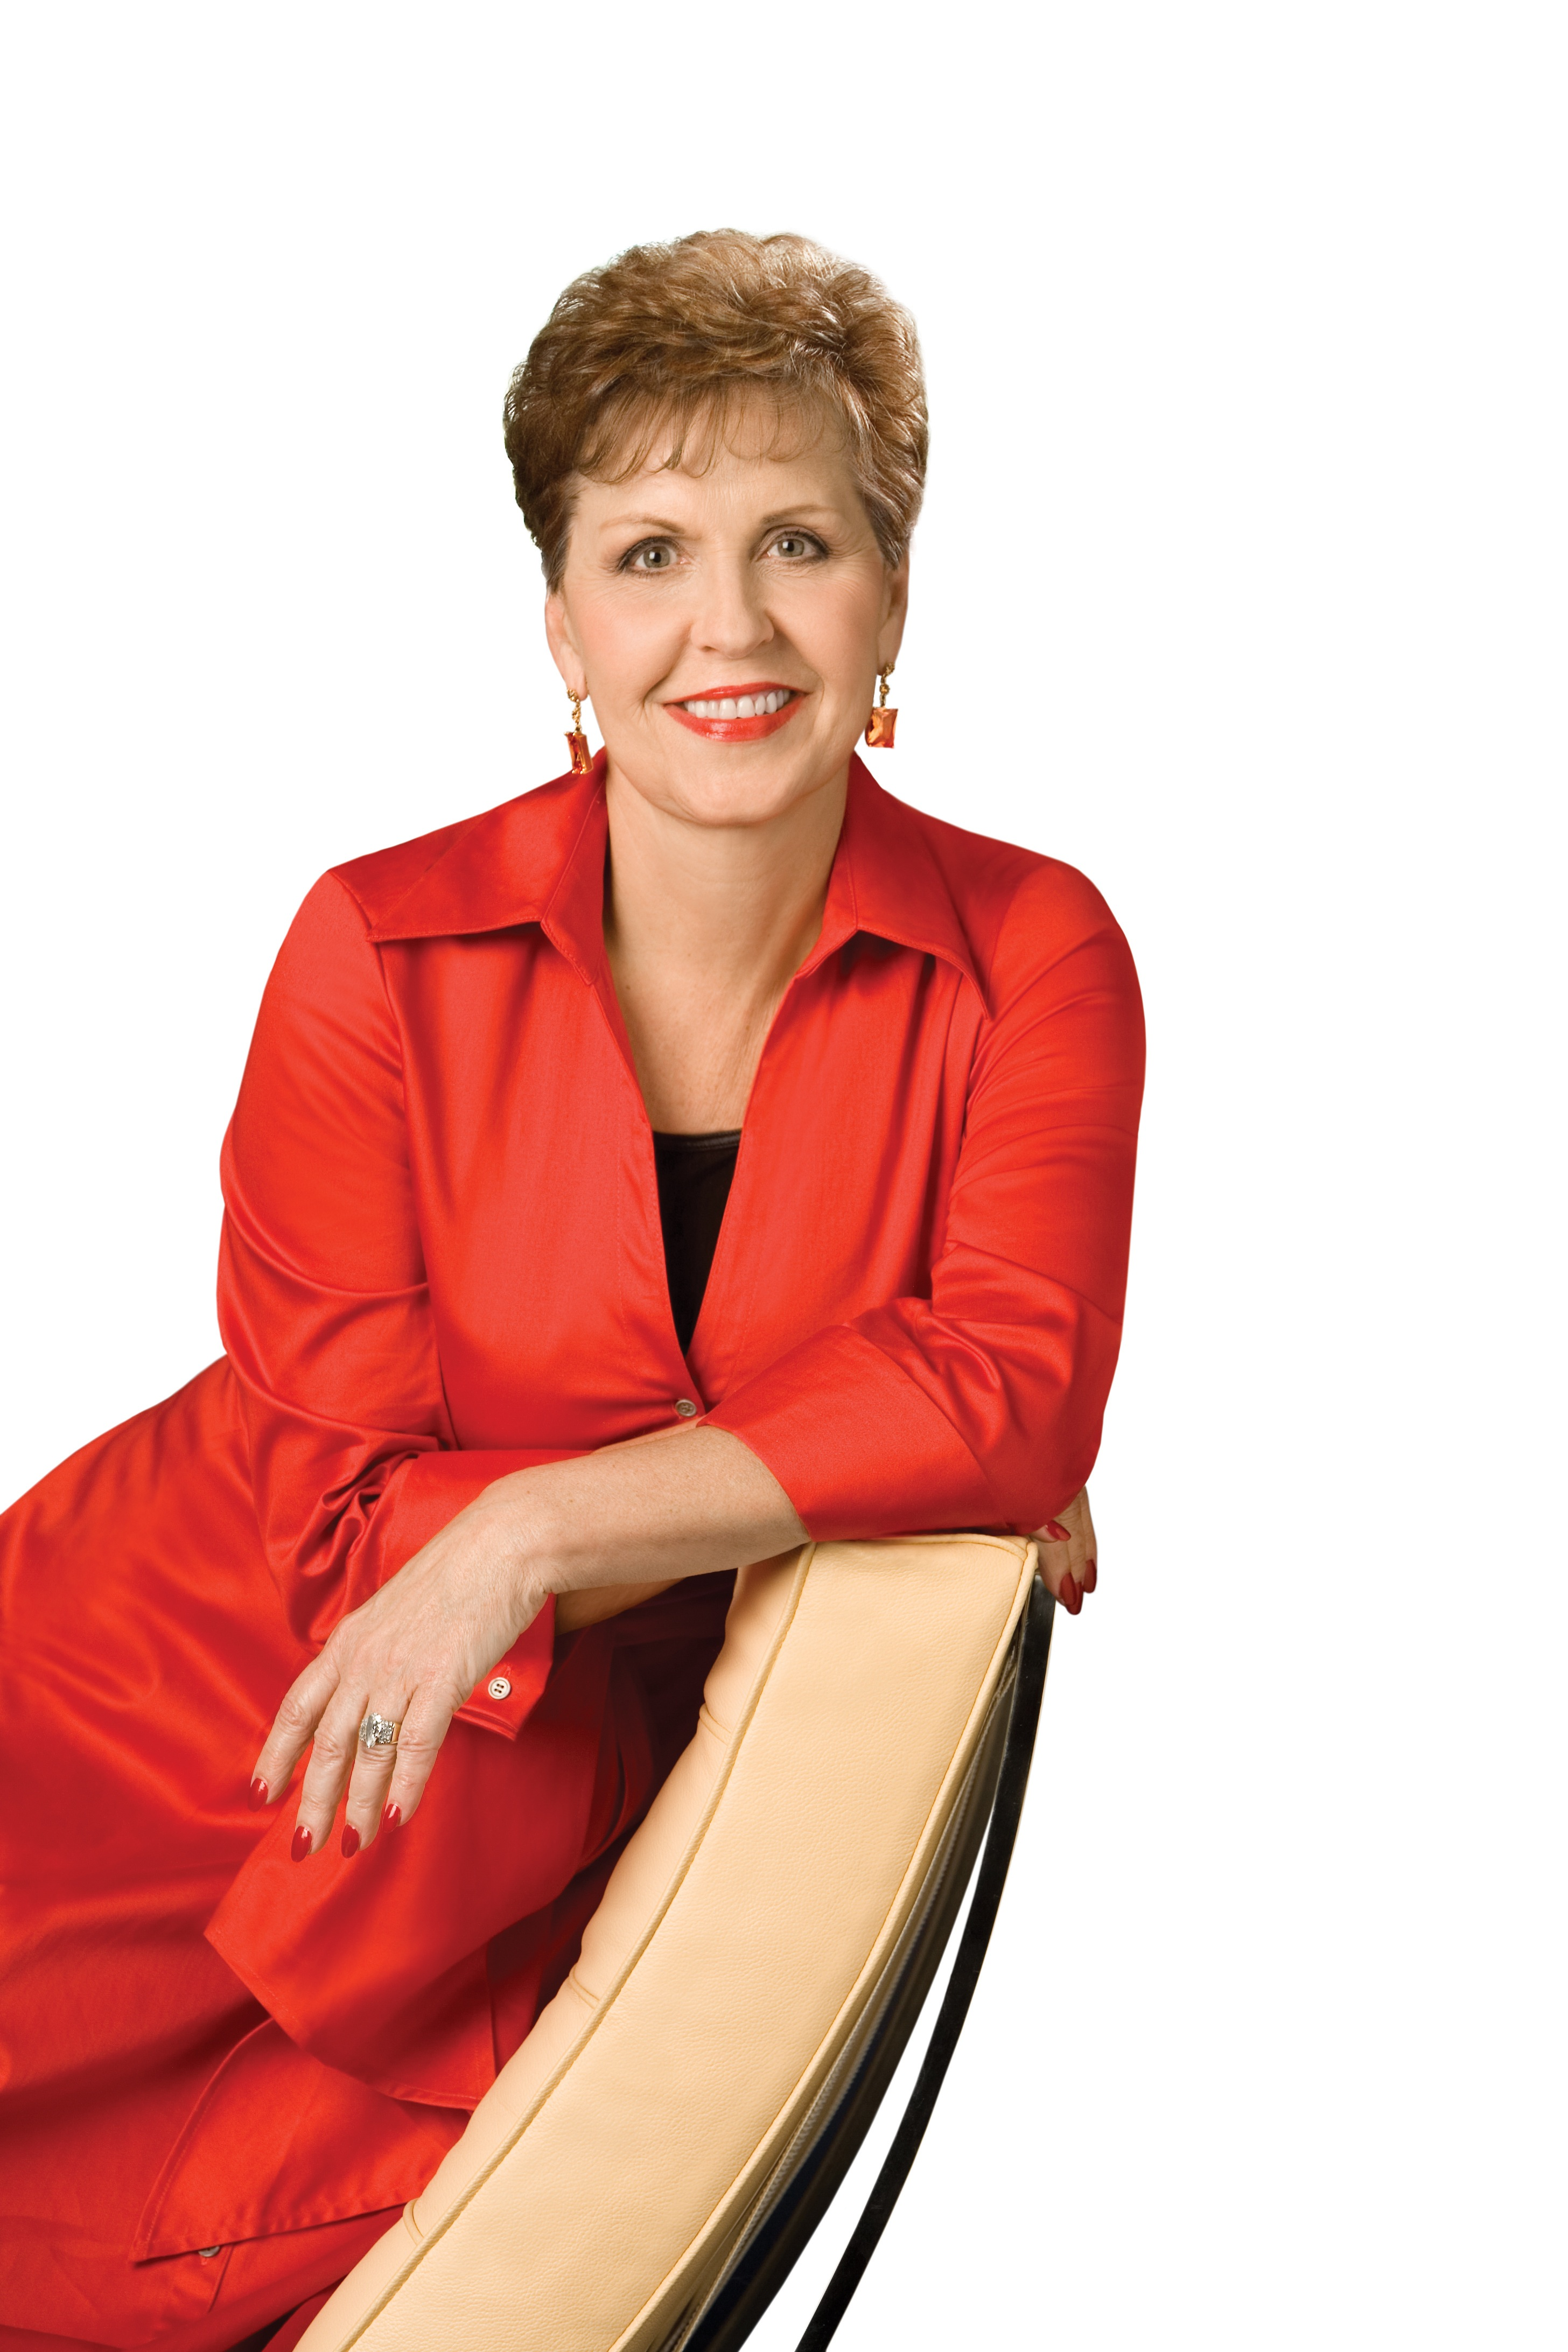 Joyce Meyer Ministries Appoints LightQuest Media